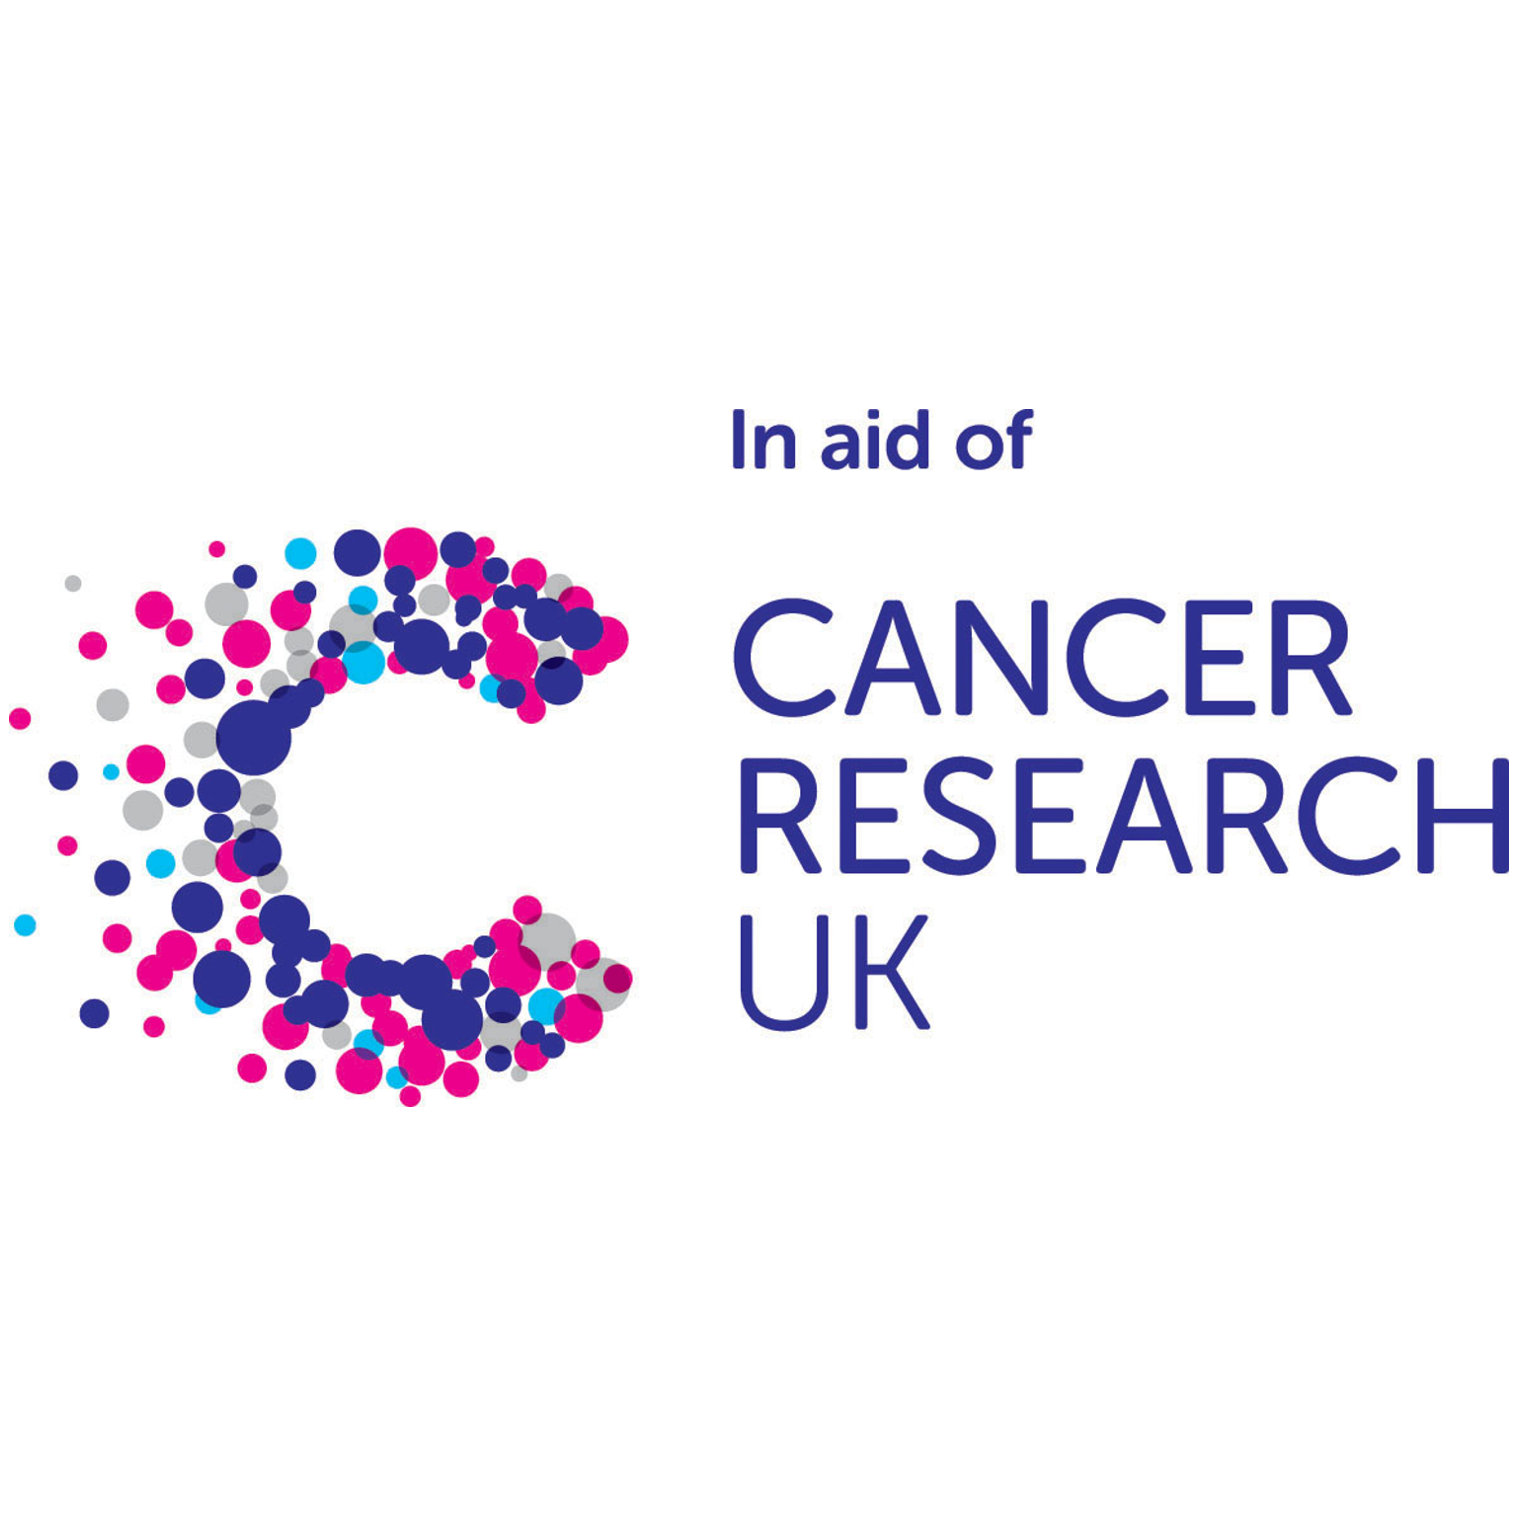 Visit Cancer Research UK